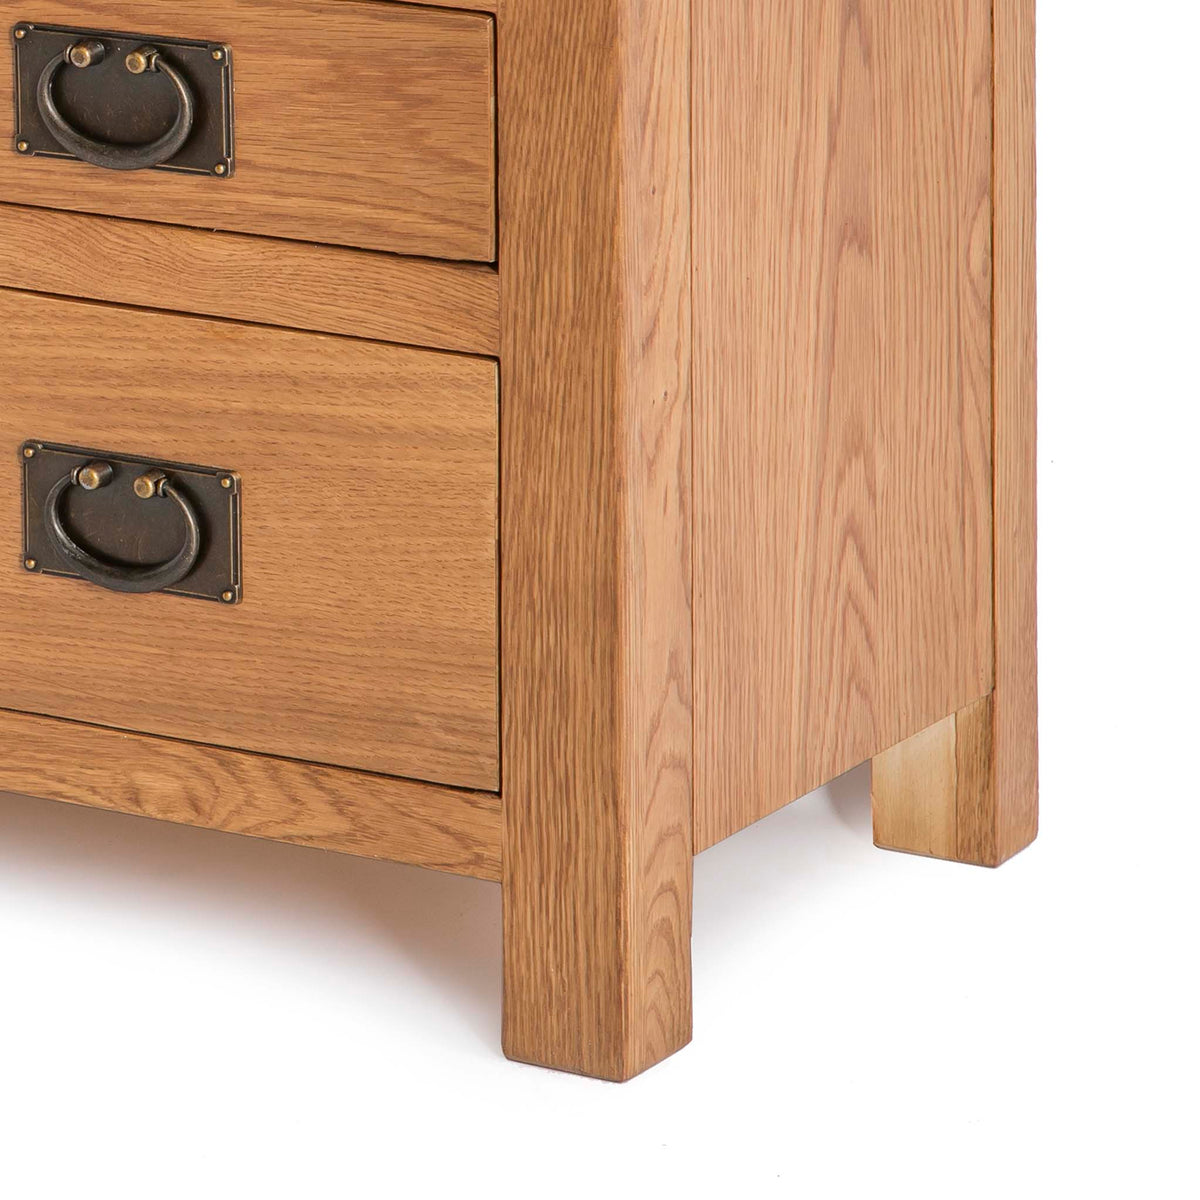 Surrey Oak 85cm TV Stand with Drawers - Close up of base of TV stand